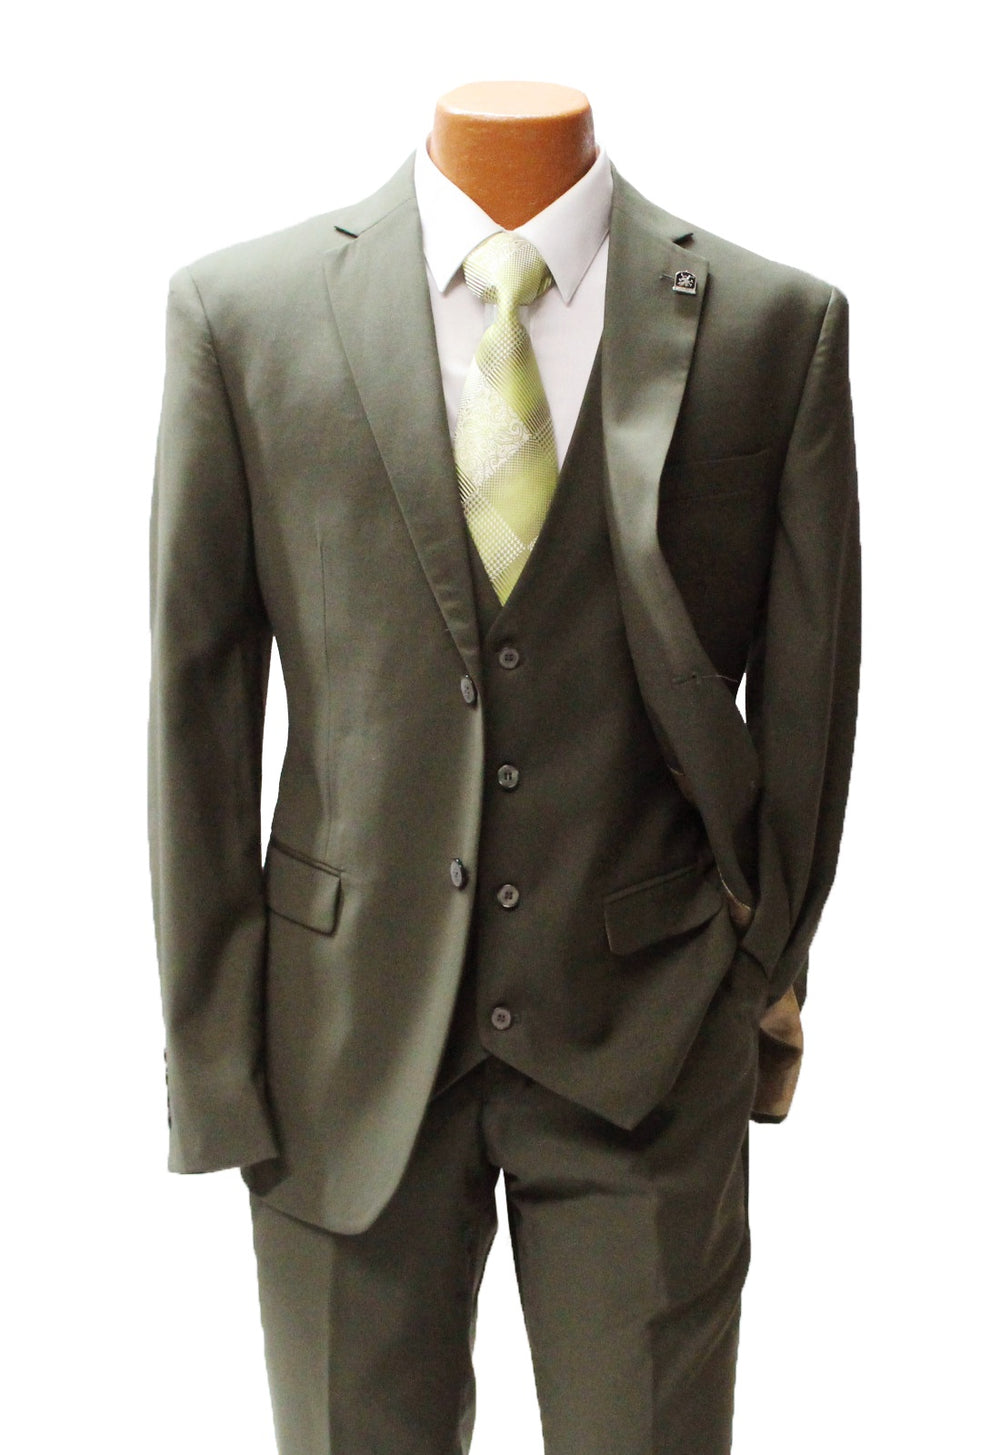 Bud Olive Green Vested Classic Fit Suit